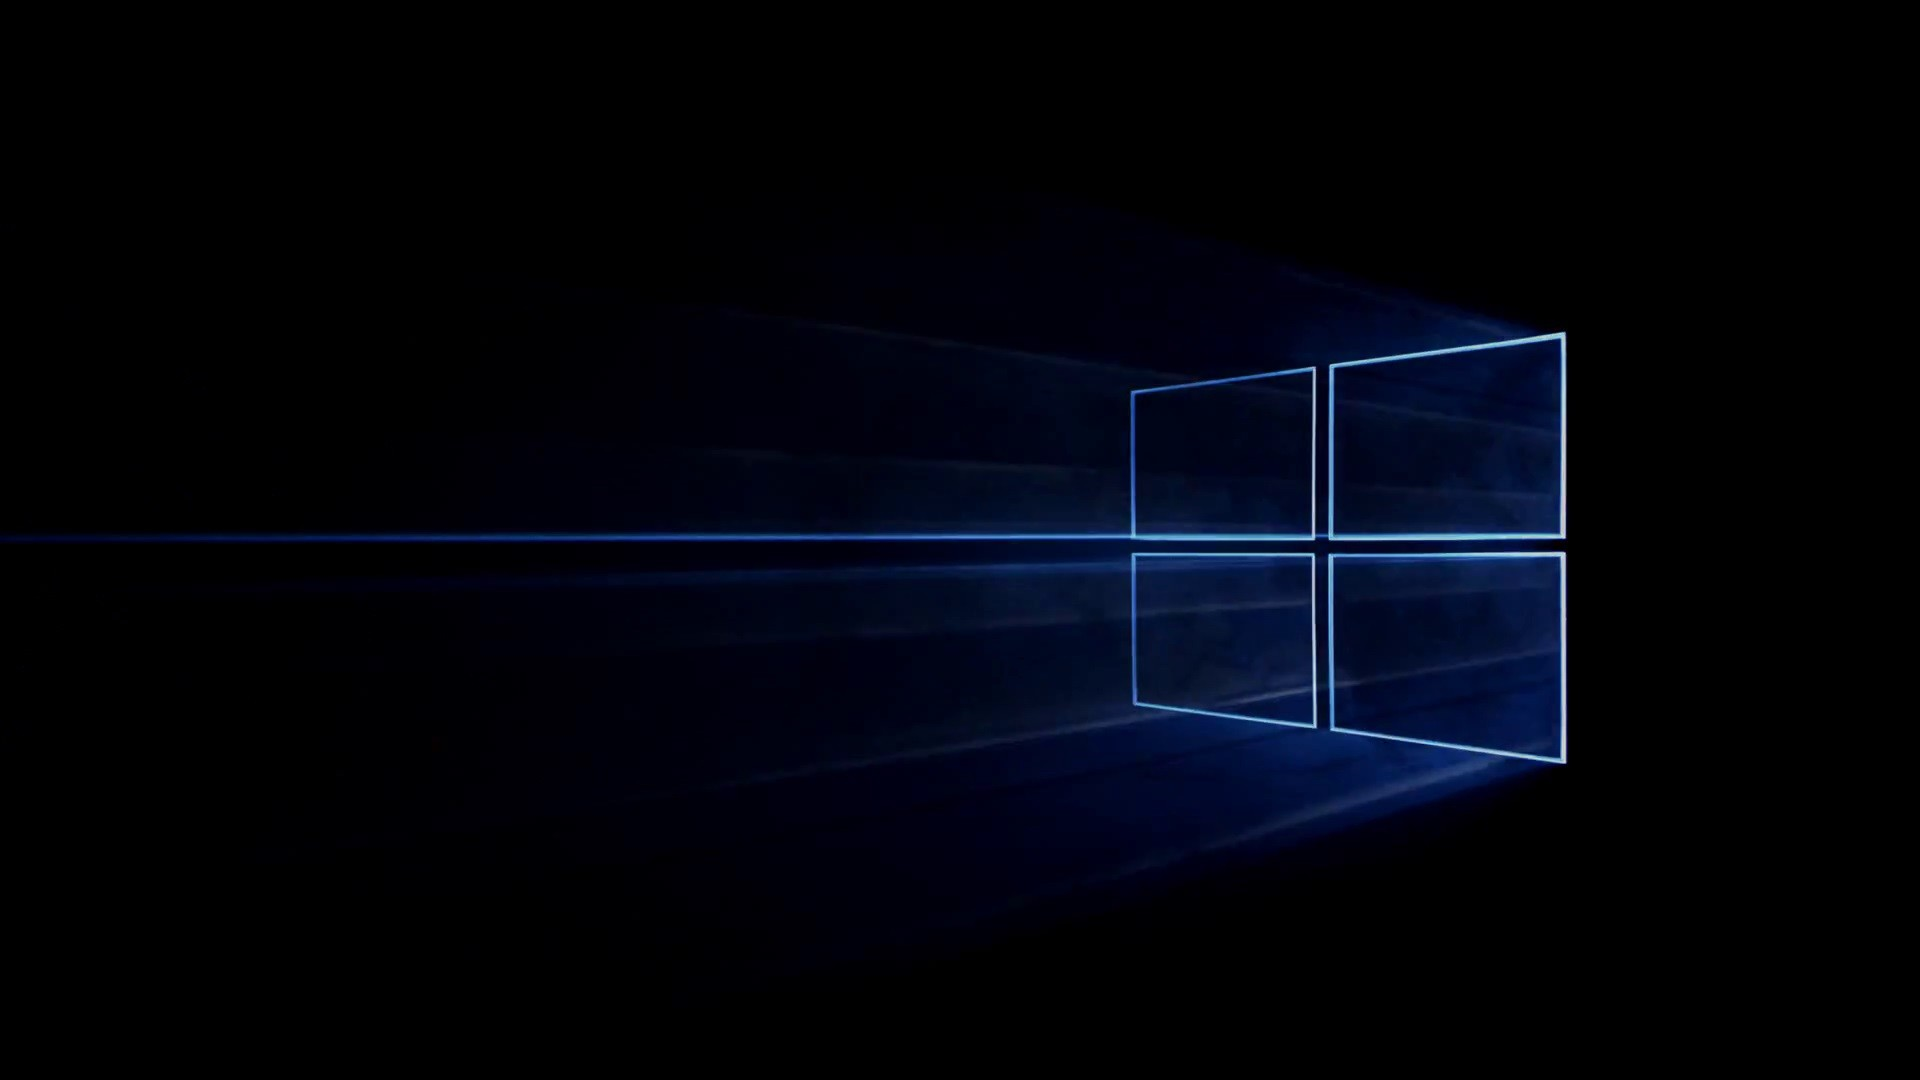 Windows 10 Wallpaper Hd Pixelstalk Net